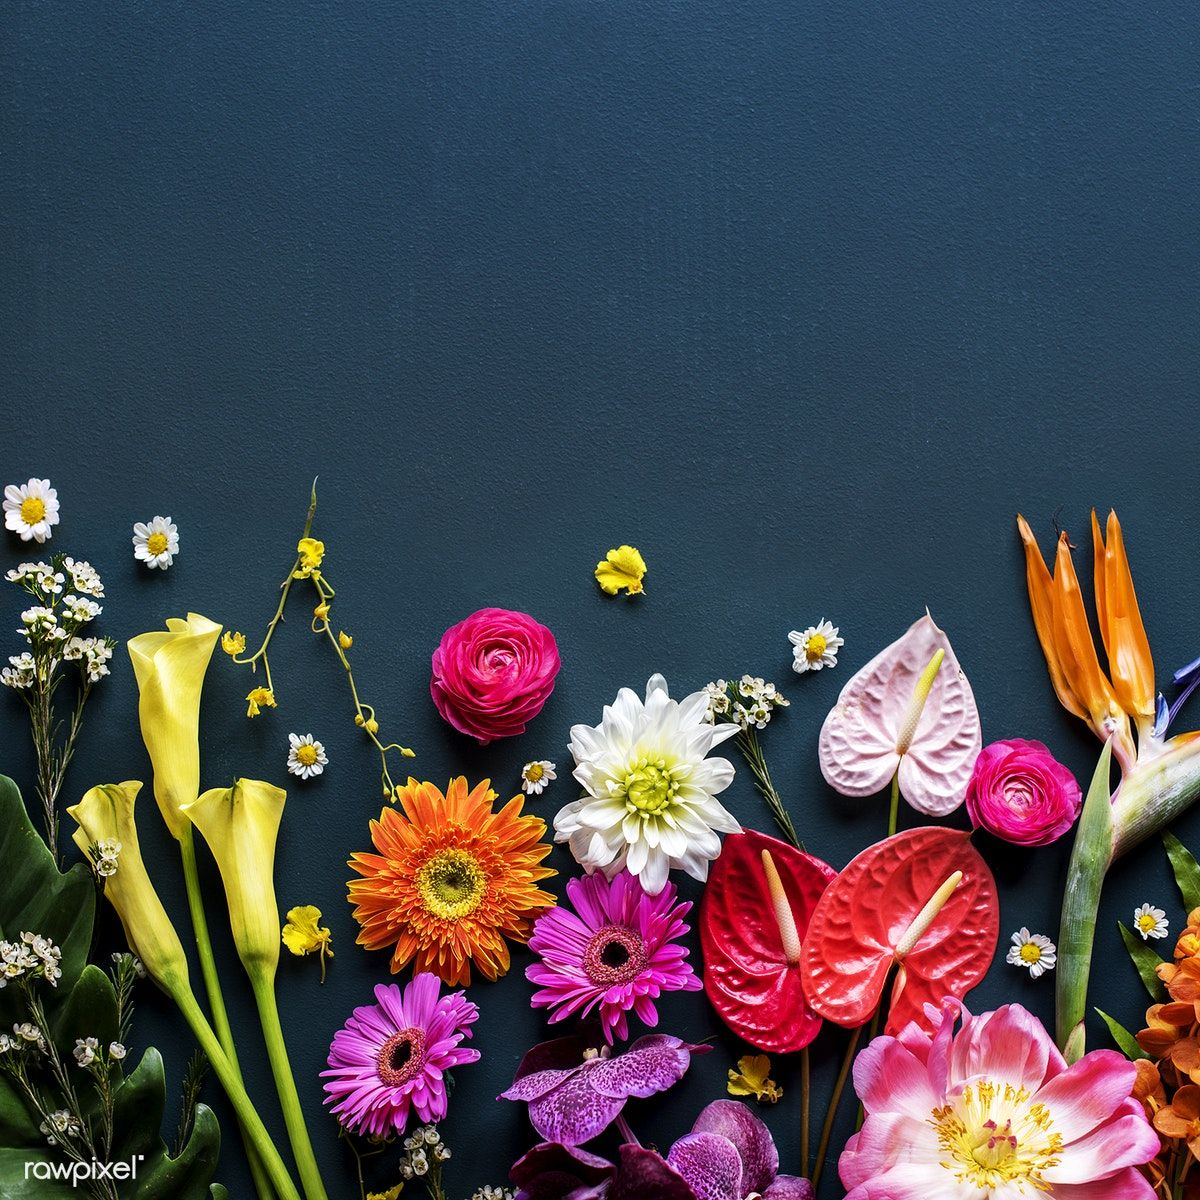 Colorful tropical flowers on black background premium image by